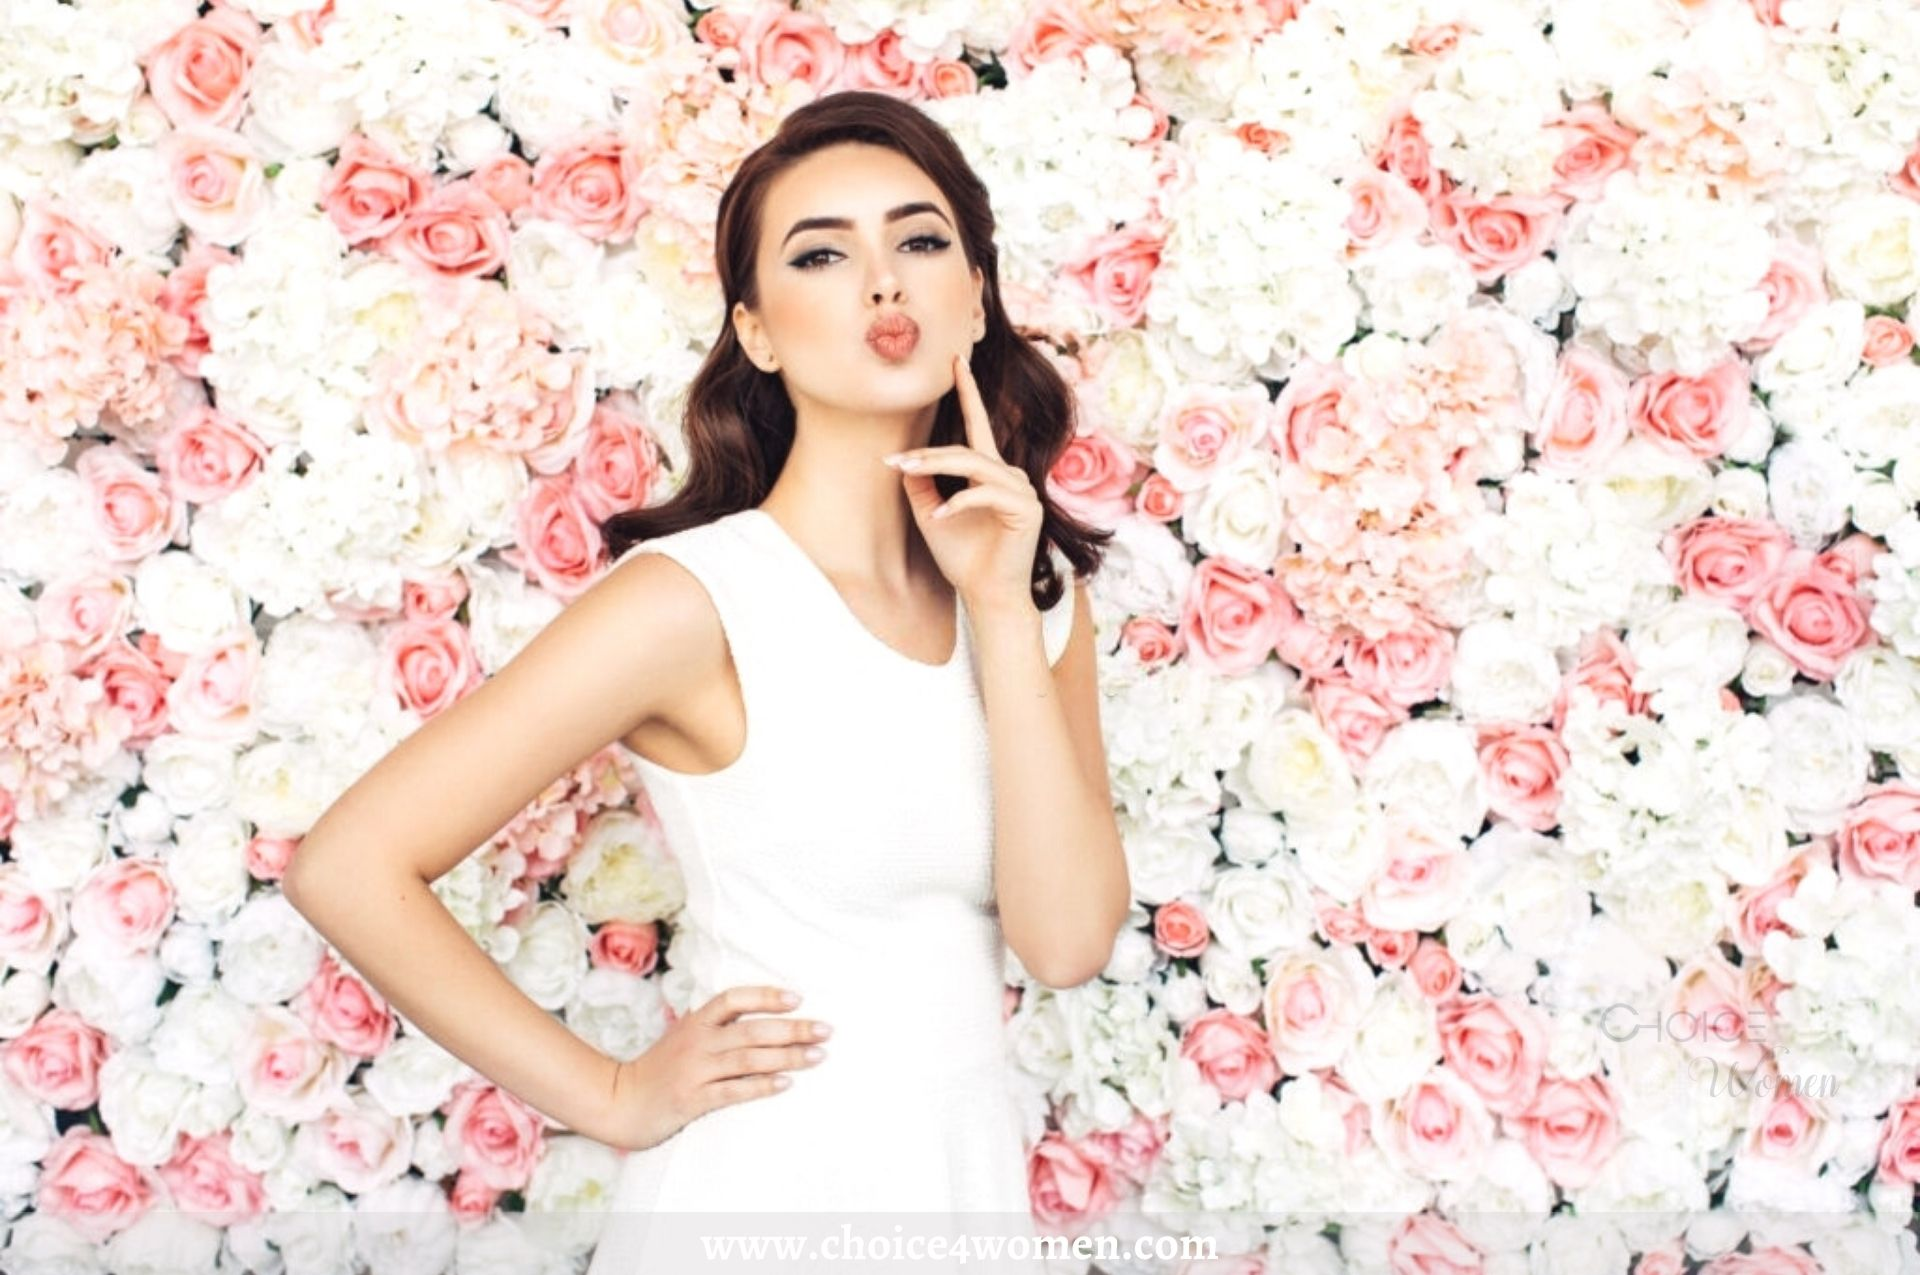 Latest Trends of Spring Makeup Looks That Will Instantly Lift Your Mood